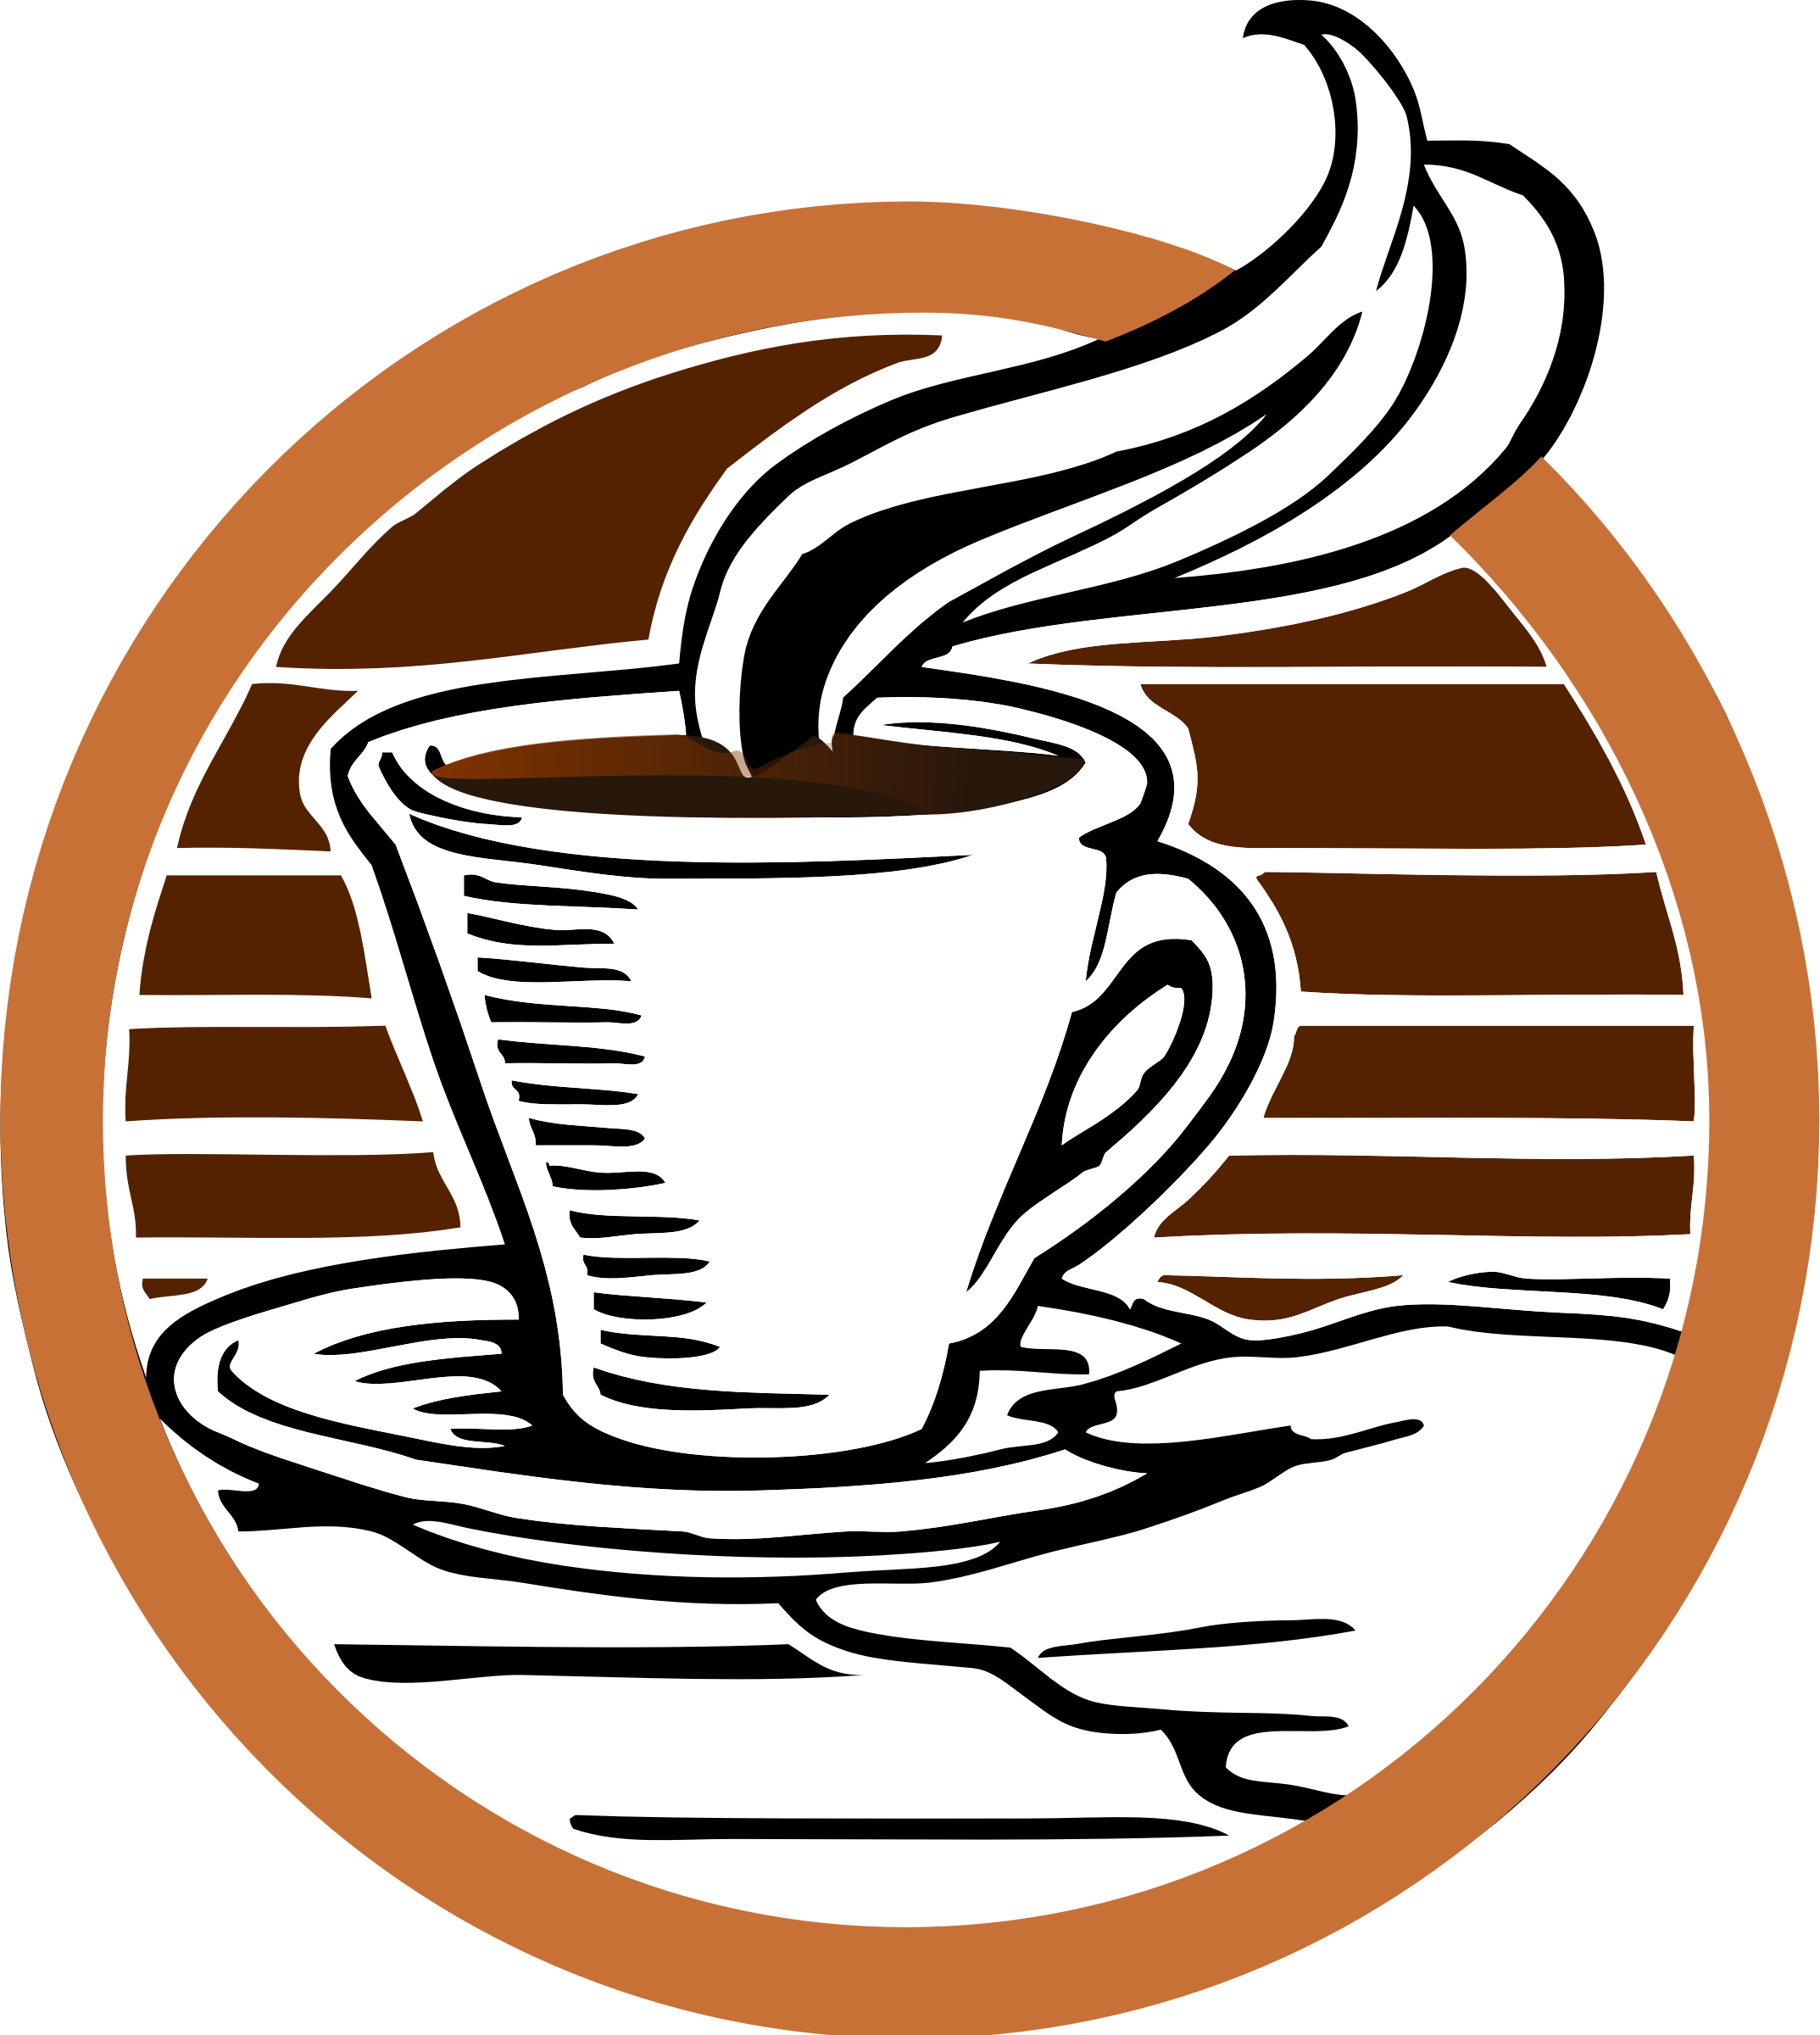 No money no coffee clipart stock Clipart - Johnny's Cup of Coffee Coloured stock